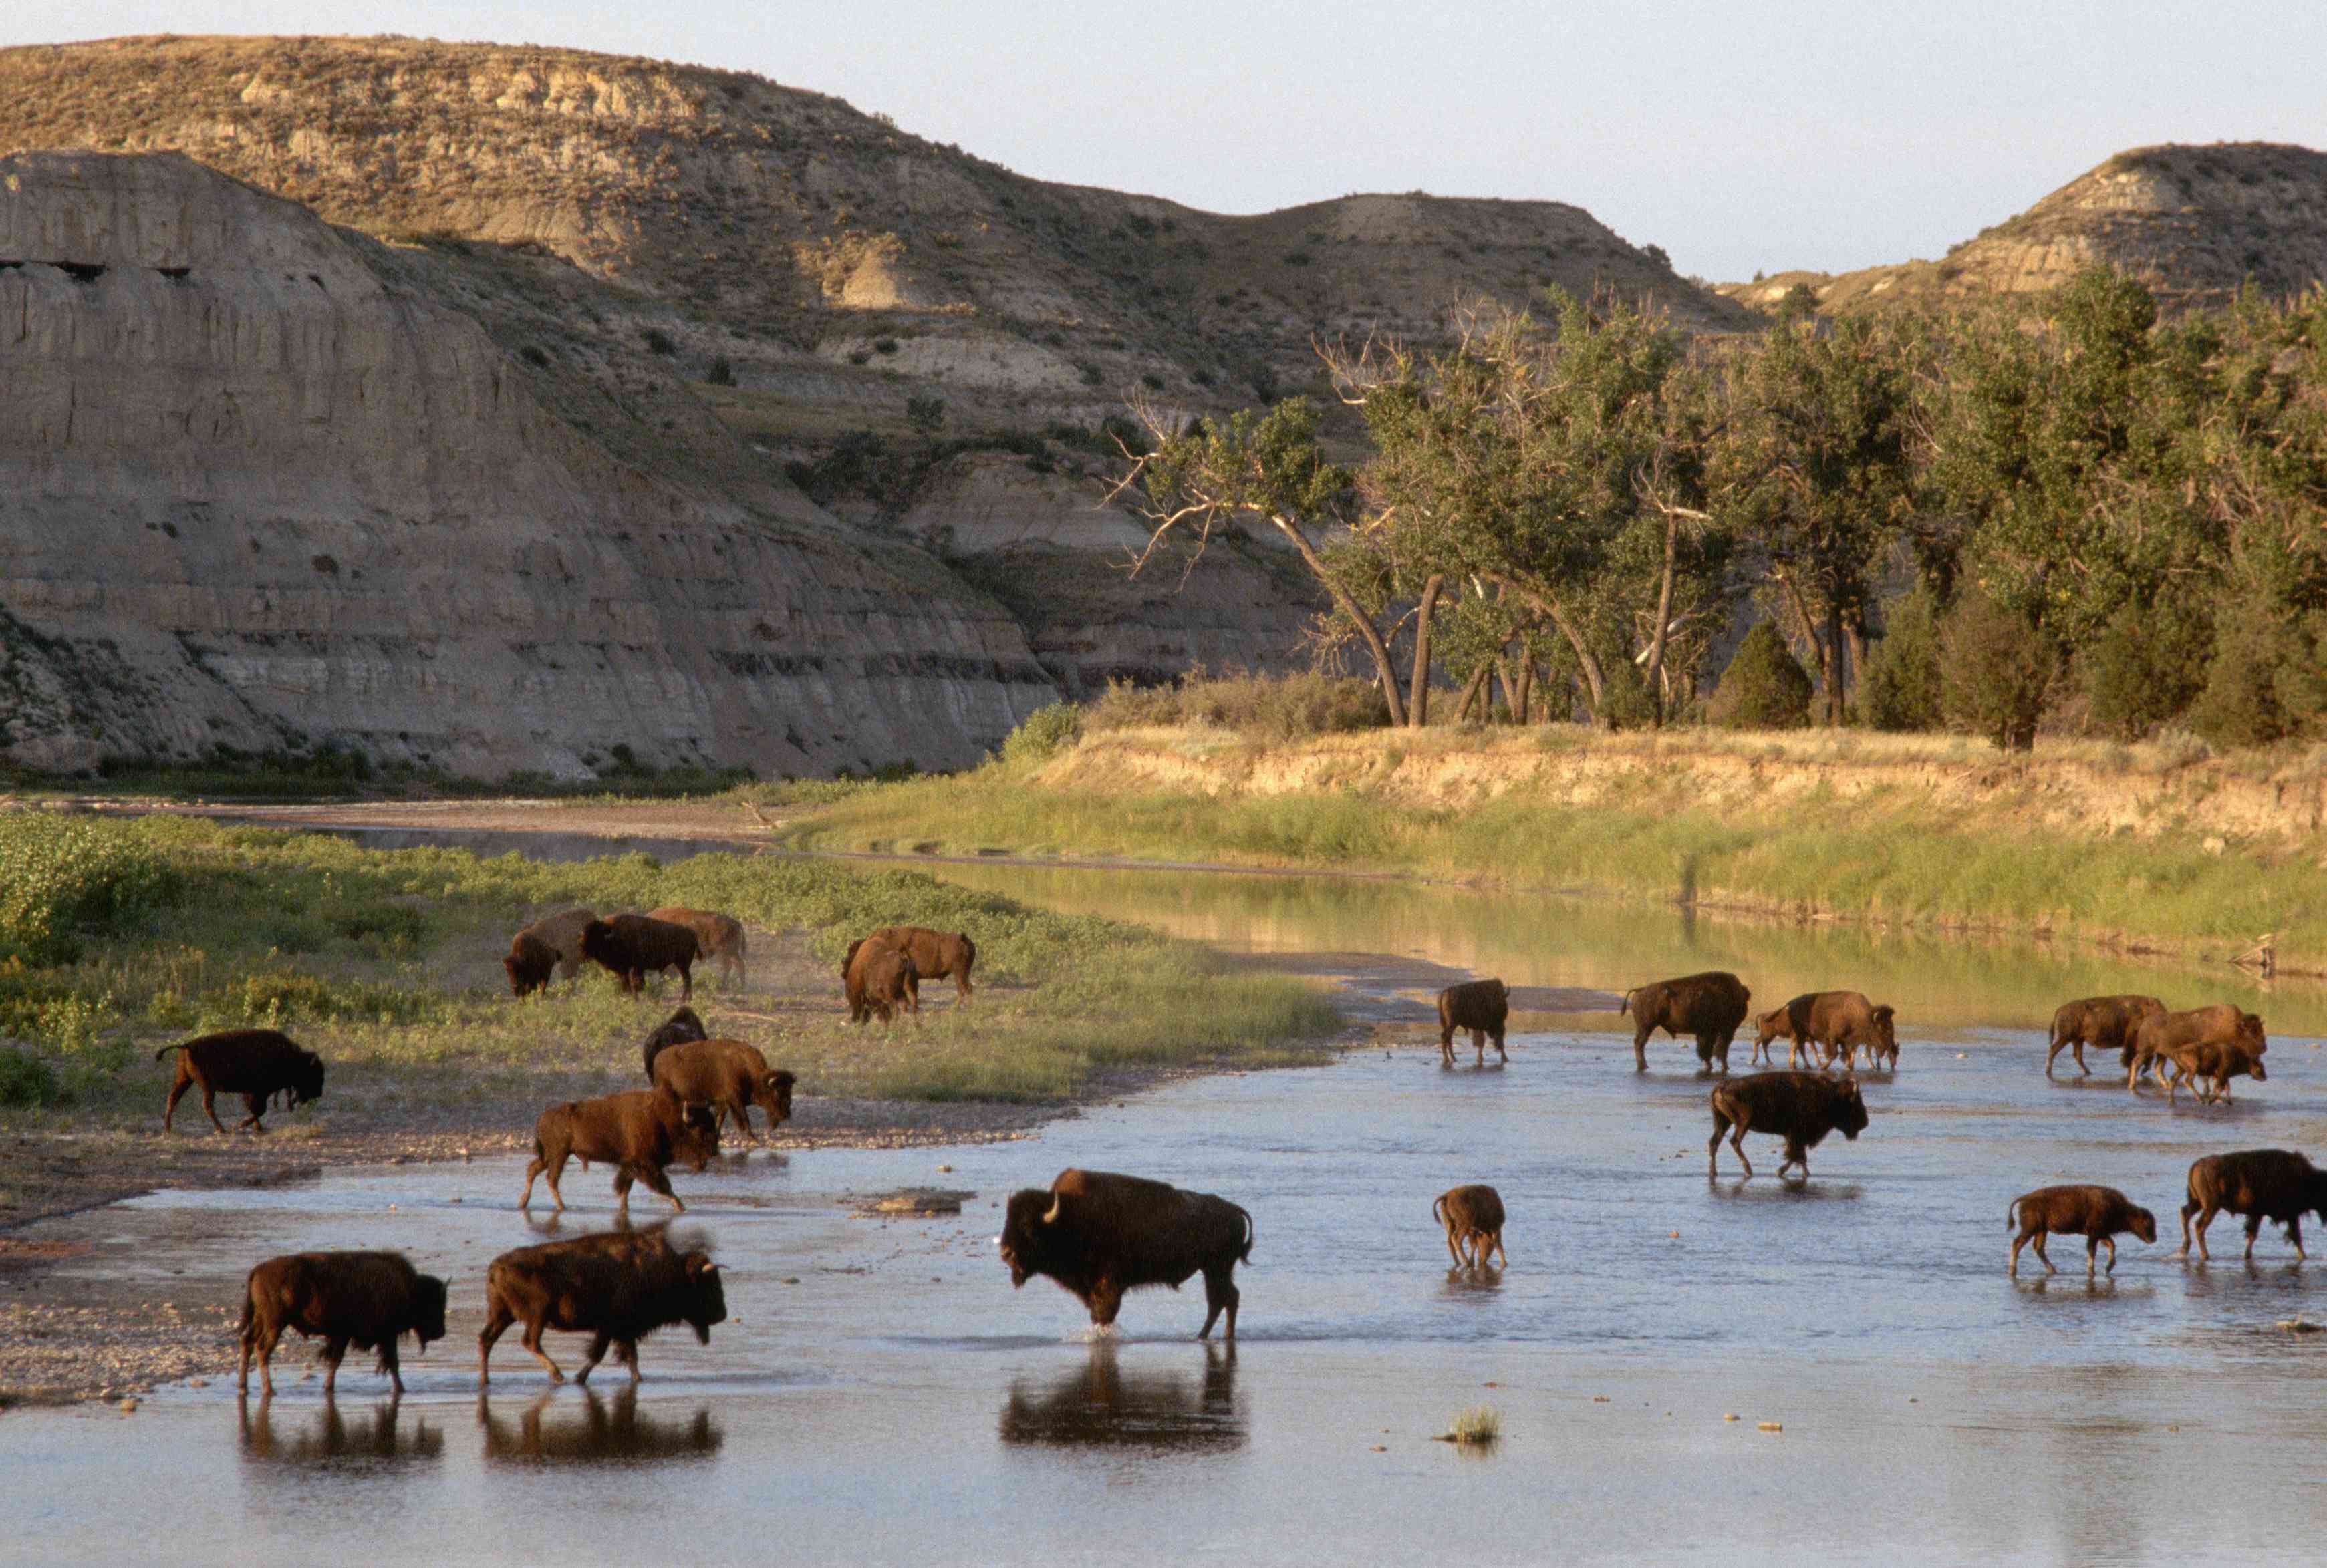 Bison Wading in River